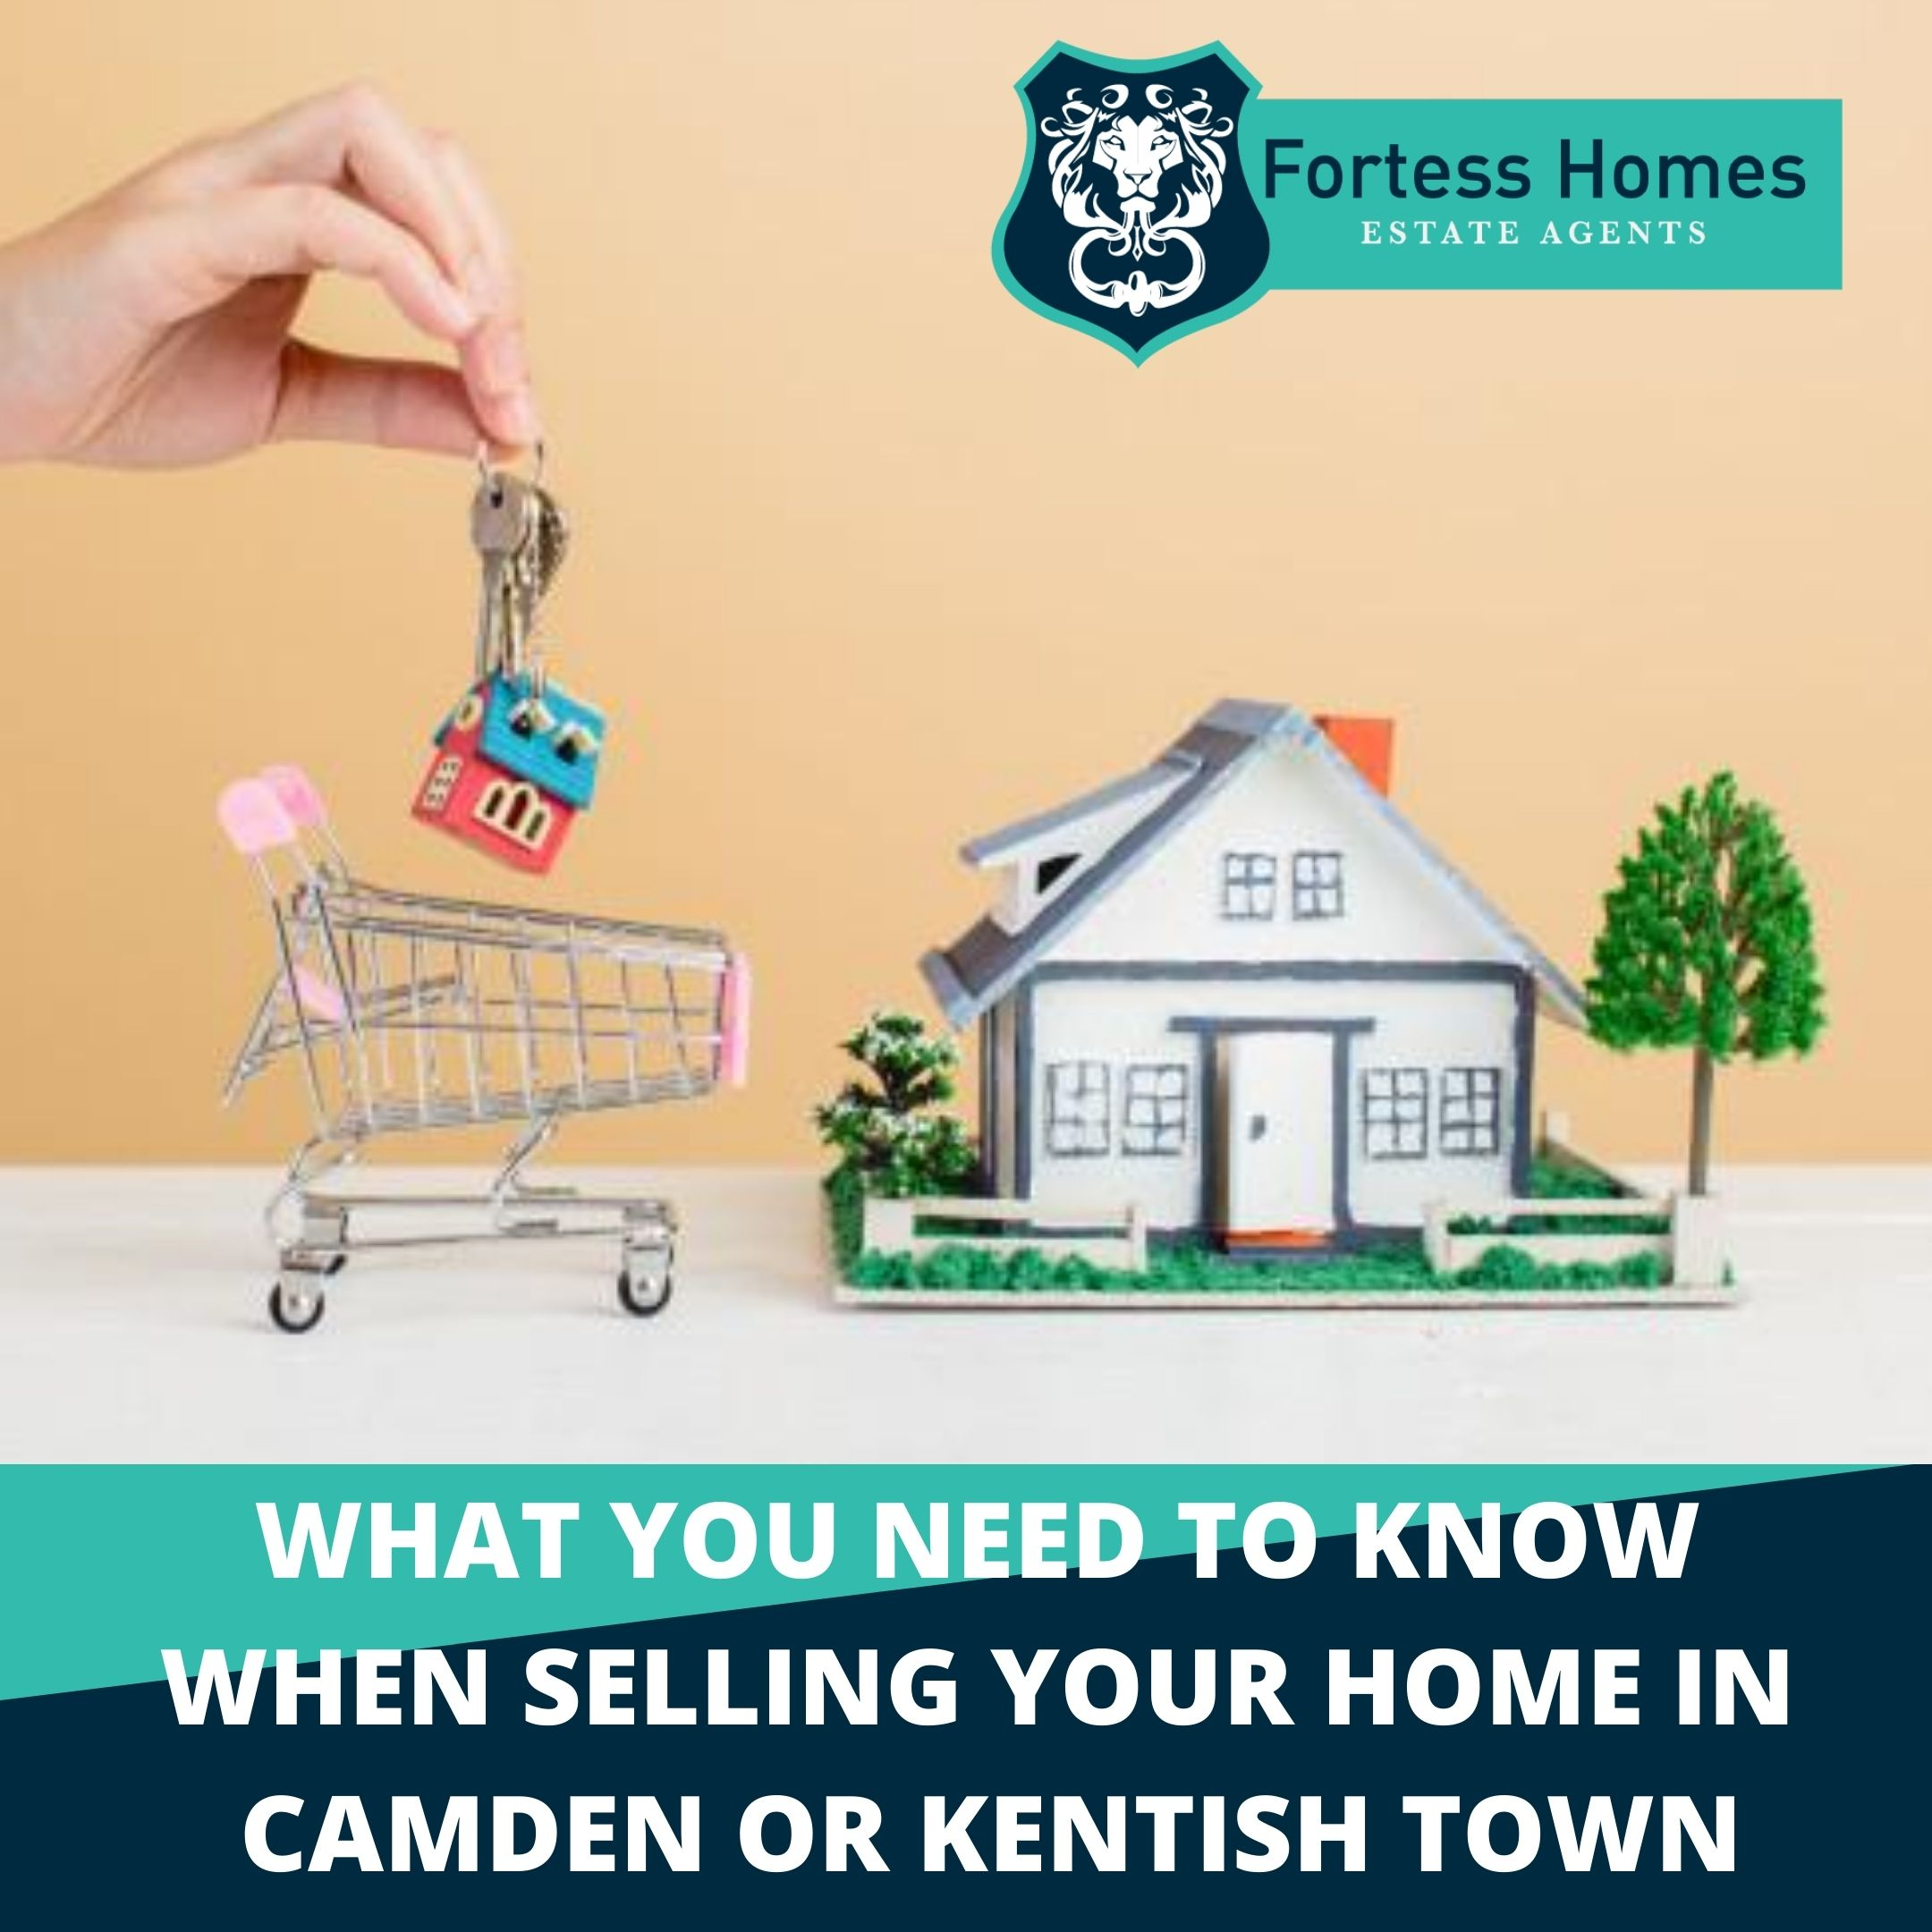 WHAT YOU NEED TO KNOW WHEN SELLING YOUR HOME IN CAMDEN OR KENTISH TOWN